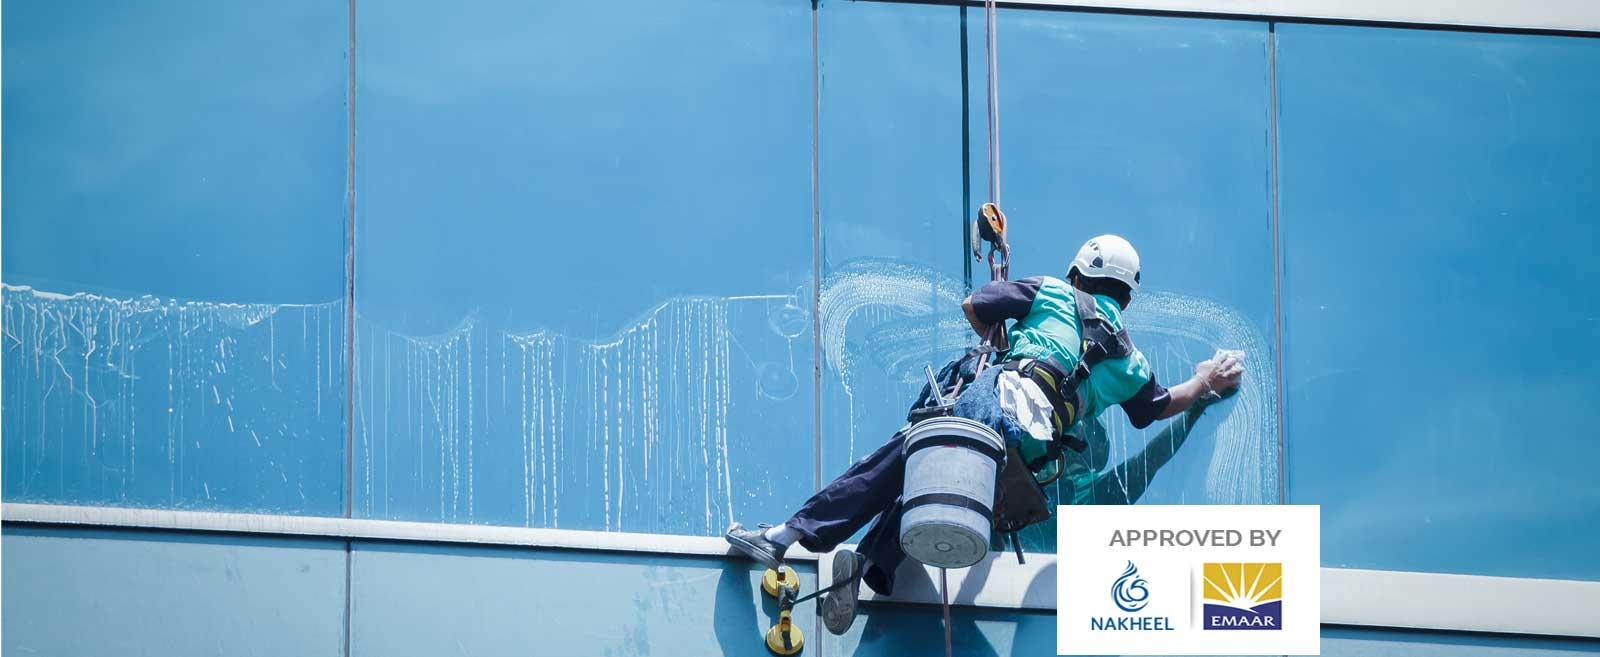 Building Cleaning and Maintenance Services in Dubai